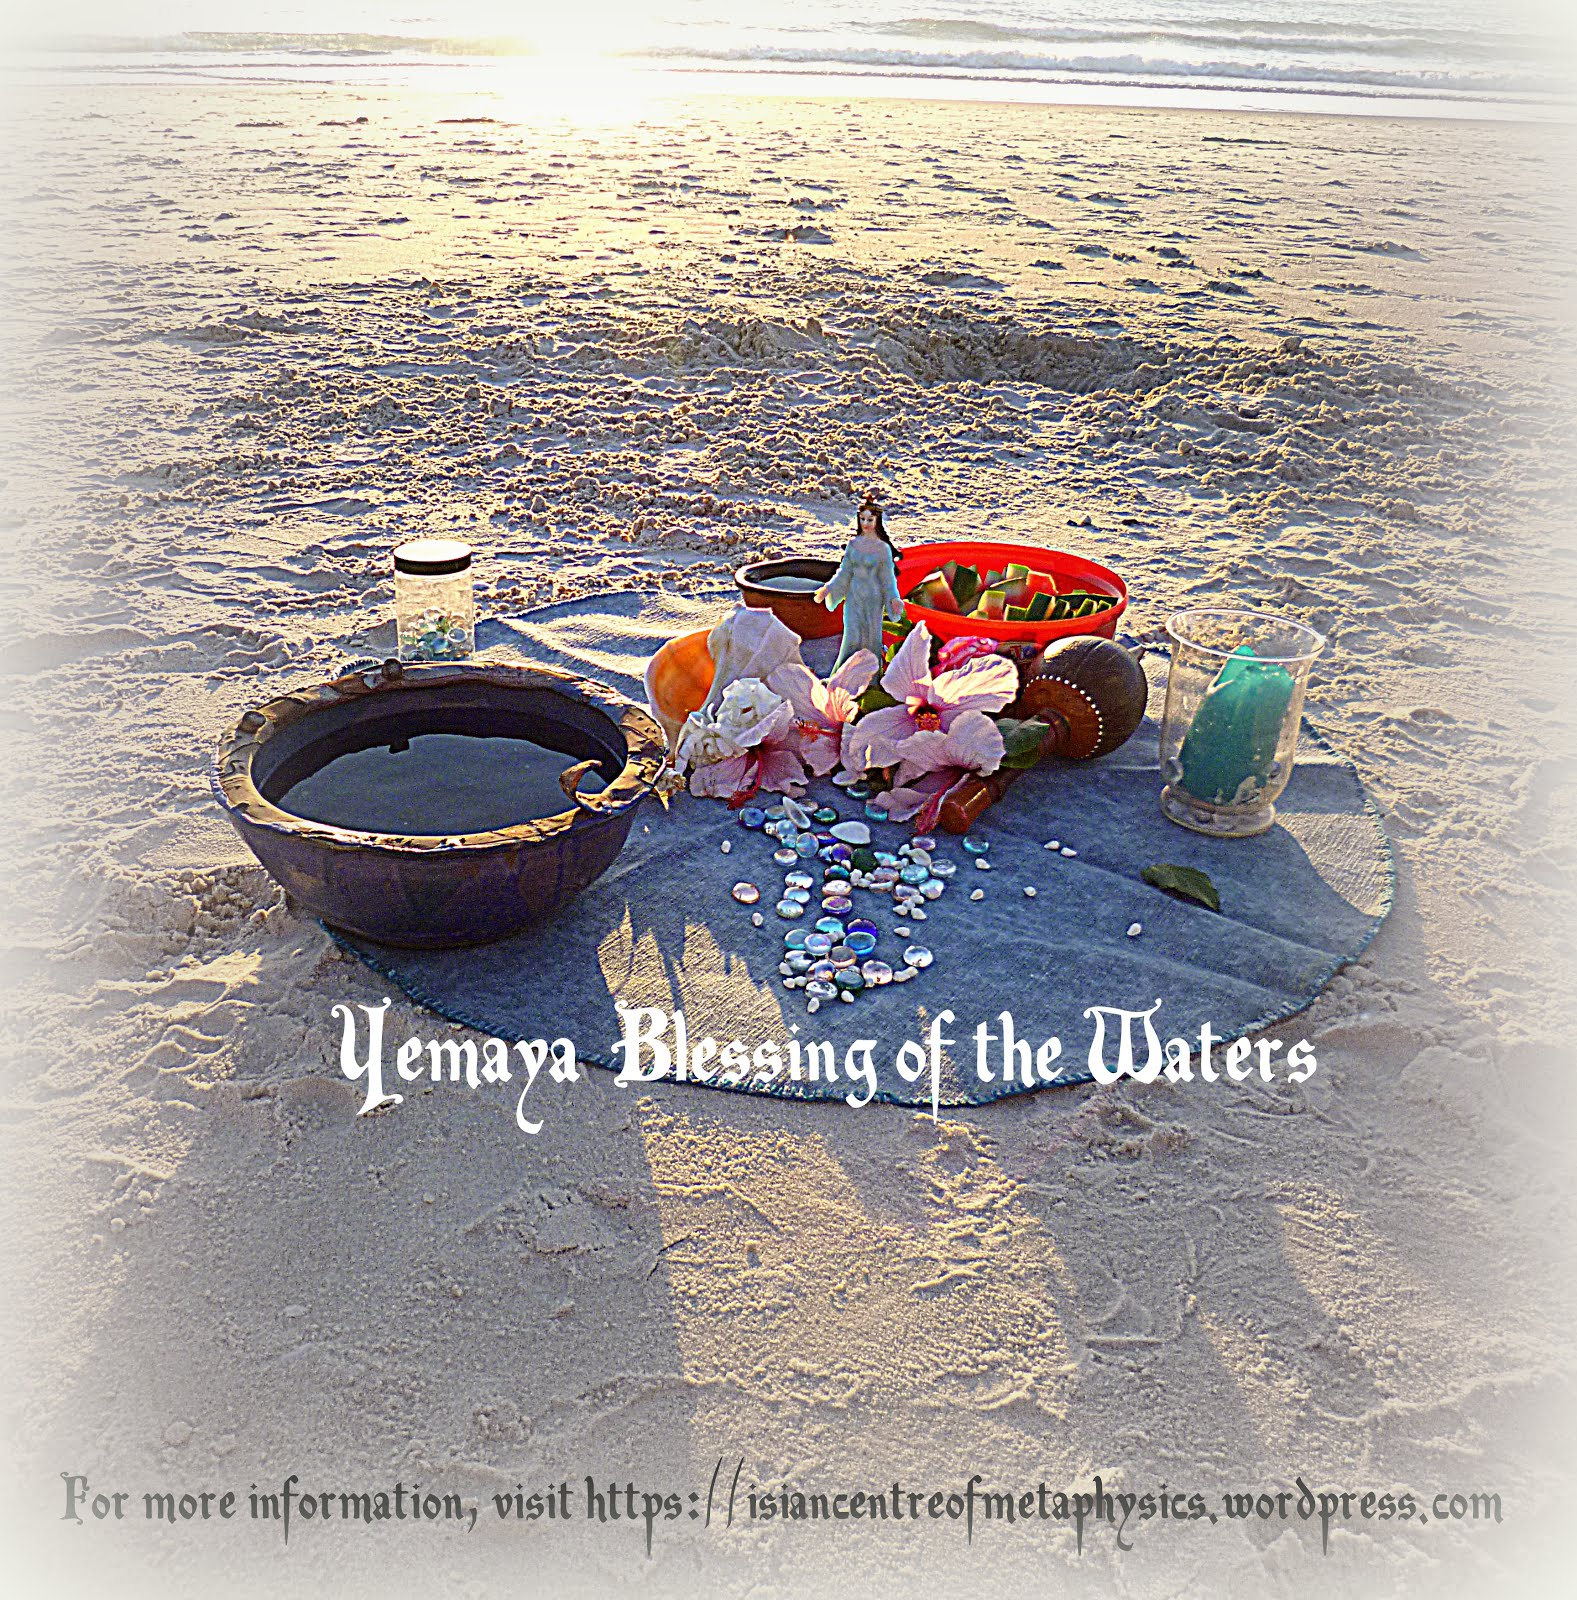 2017 - JANUARY: Yemaya Blessing of the Waters